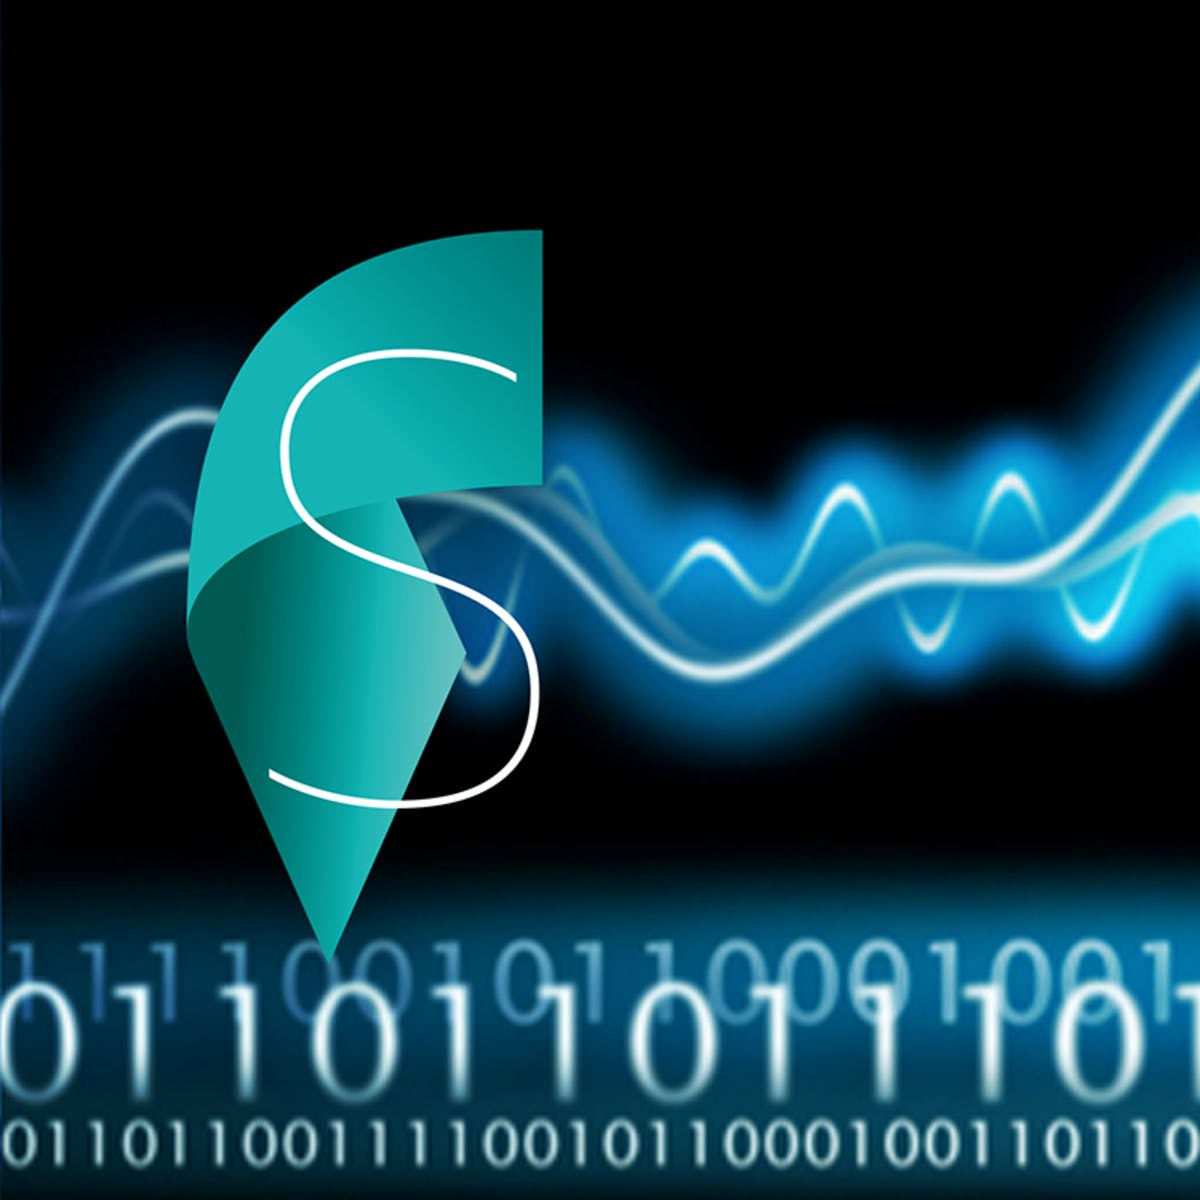 Digital Signal Processing 1 Basic Concepts And Algorithms Coursera